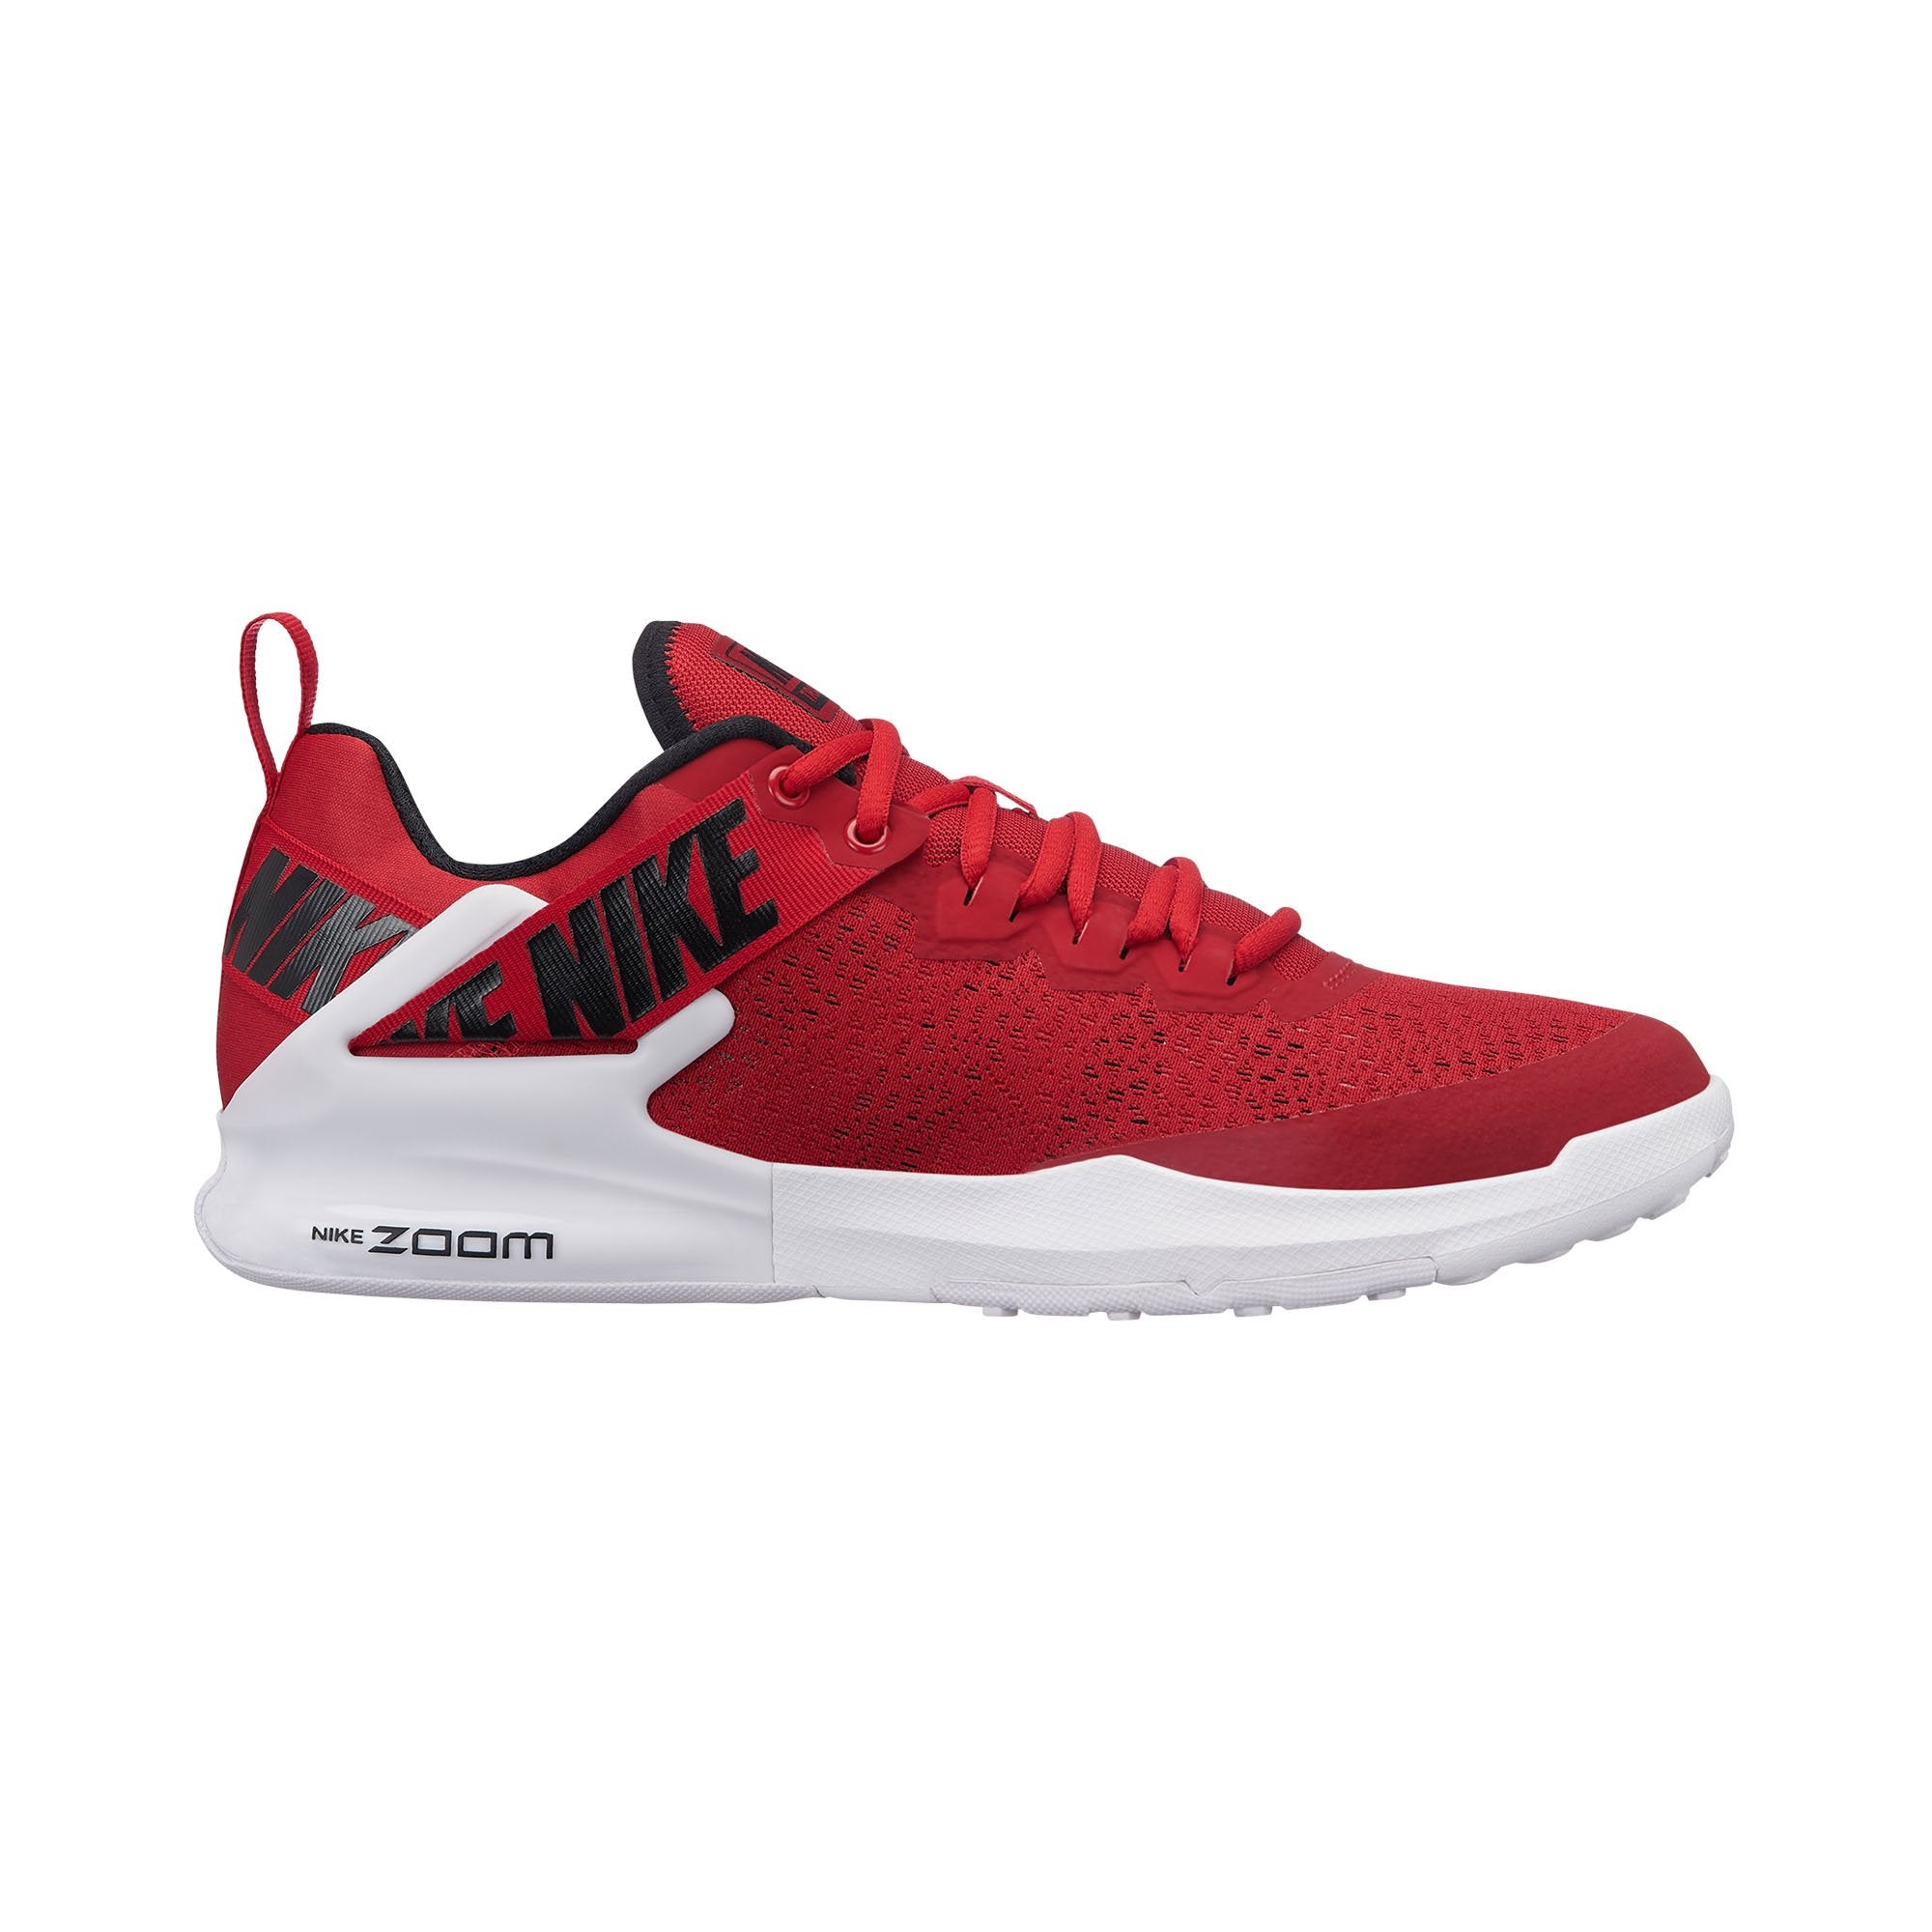 844dfdc7dab8 Singapore Nike Men Zoom Domination Tr 2 Training Shoes